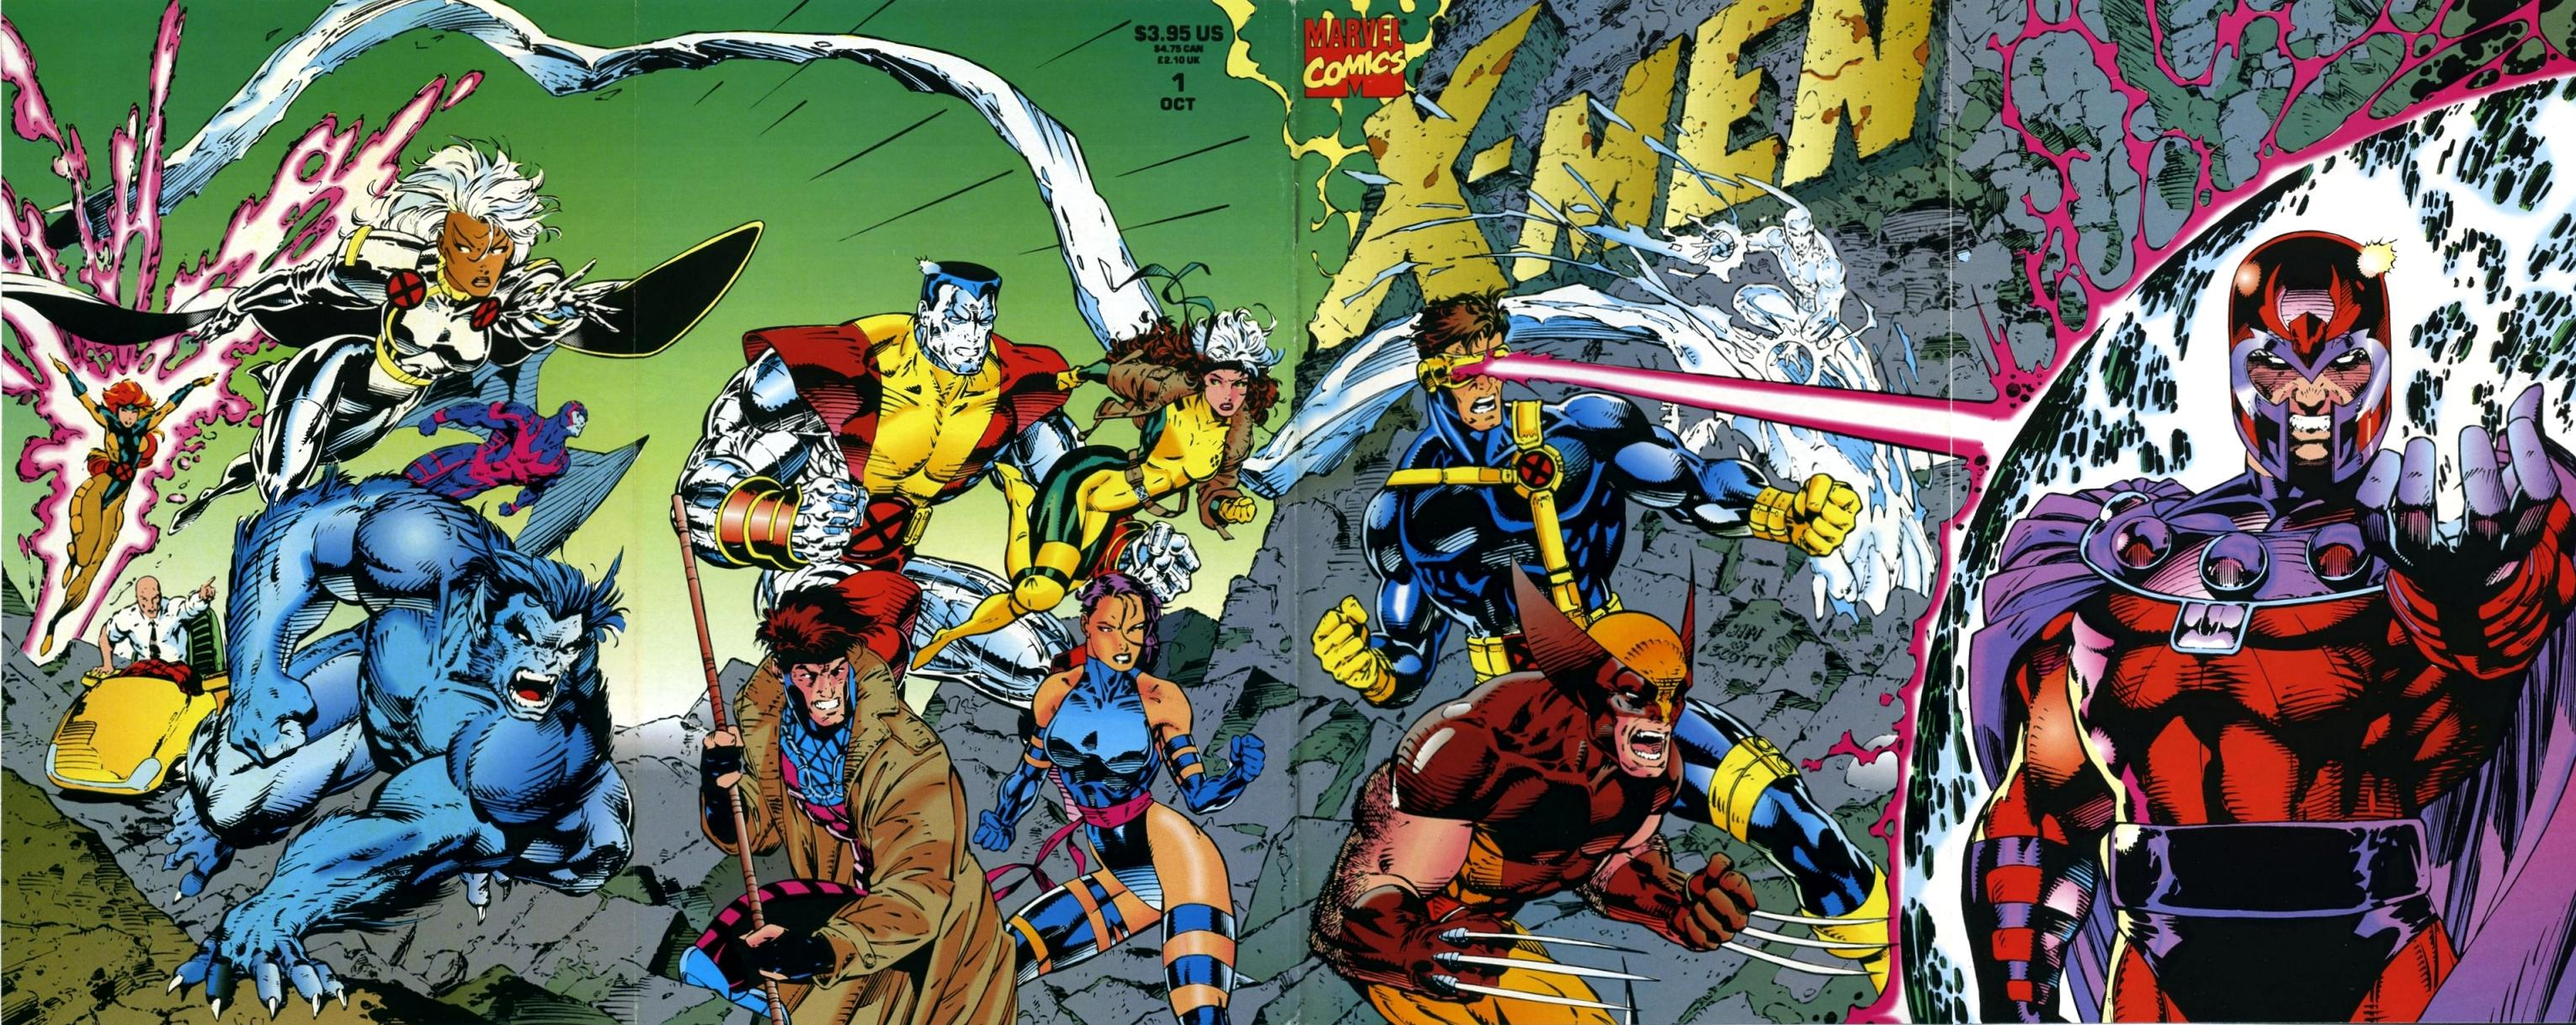 X-Men #1 via Marvel Comics